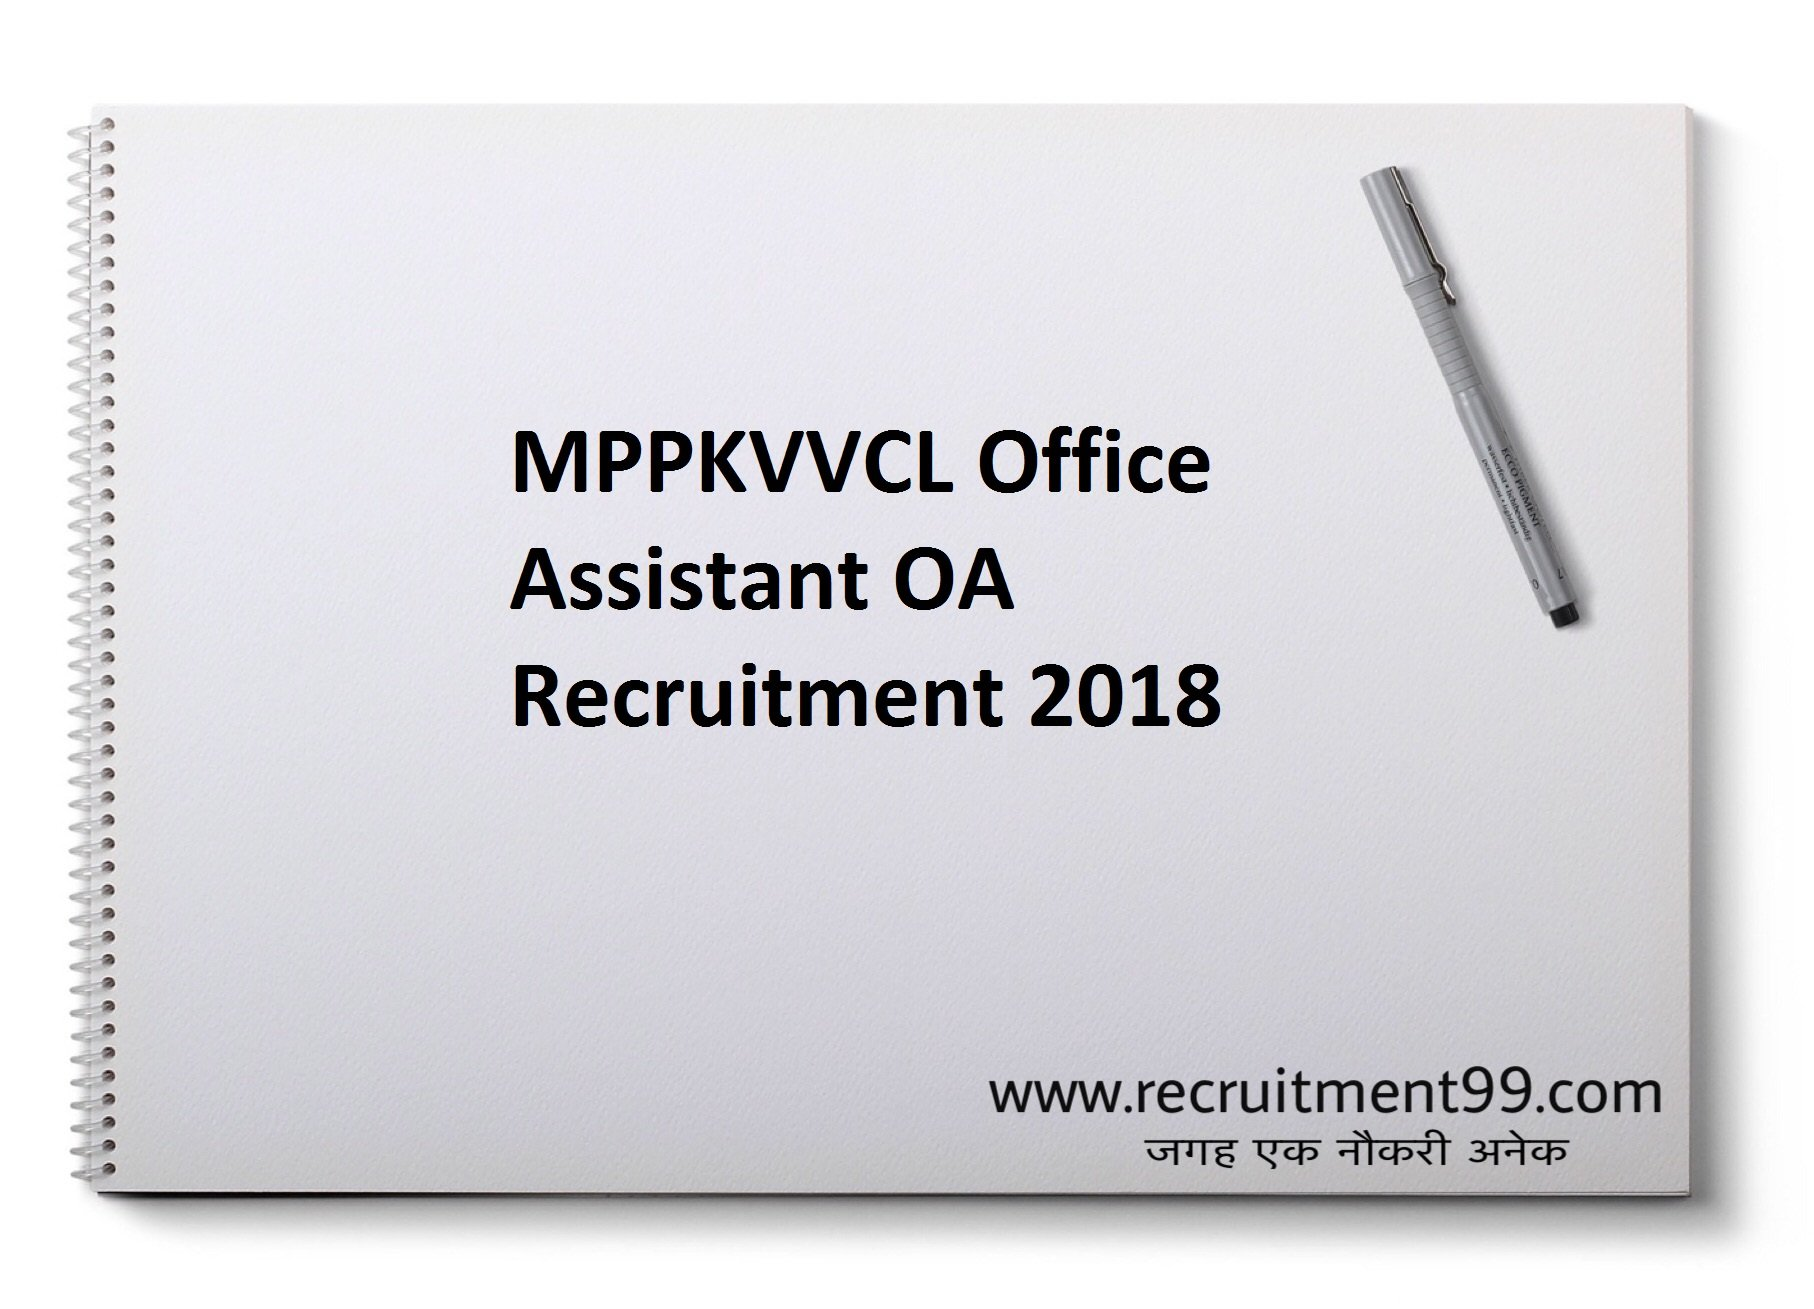 MPPKVVCL Office Assistant Recruitment Admit Card & Result 2018